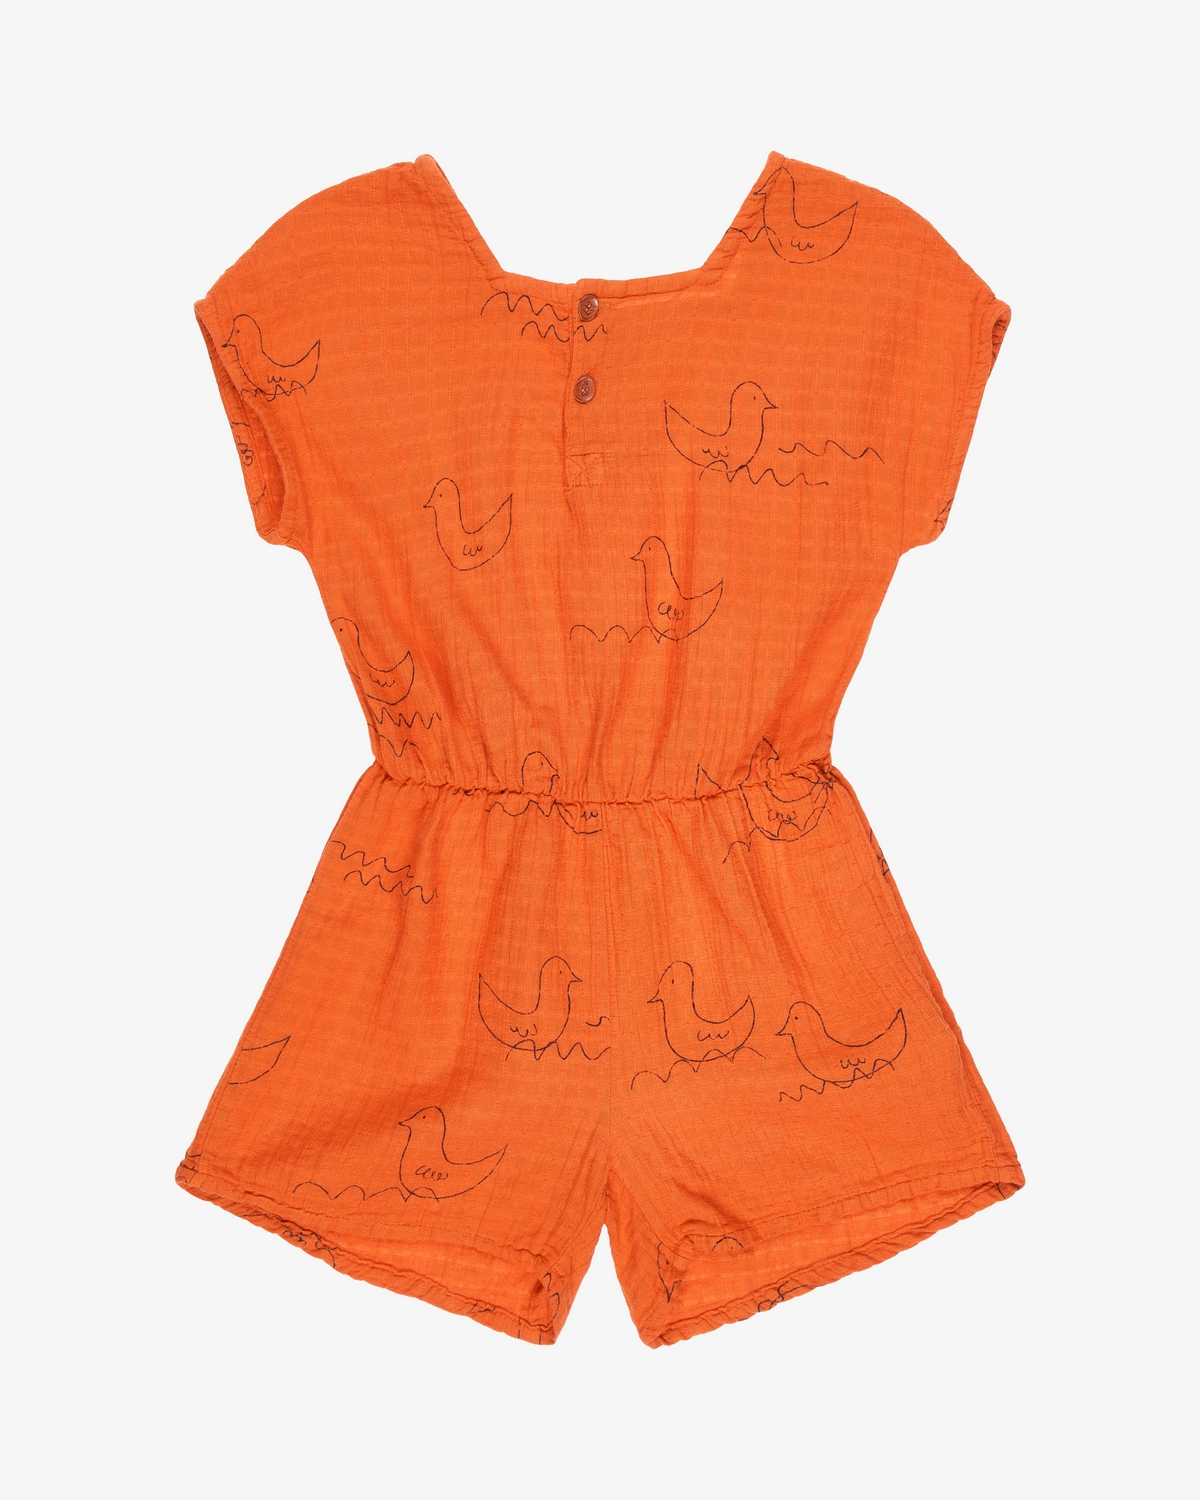 Bobo Choses Geese jumpsuit